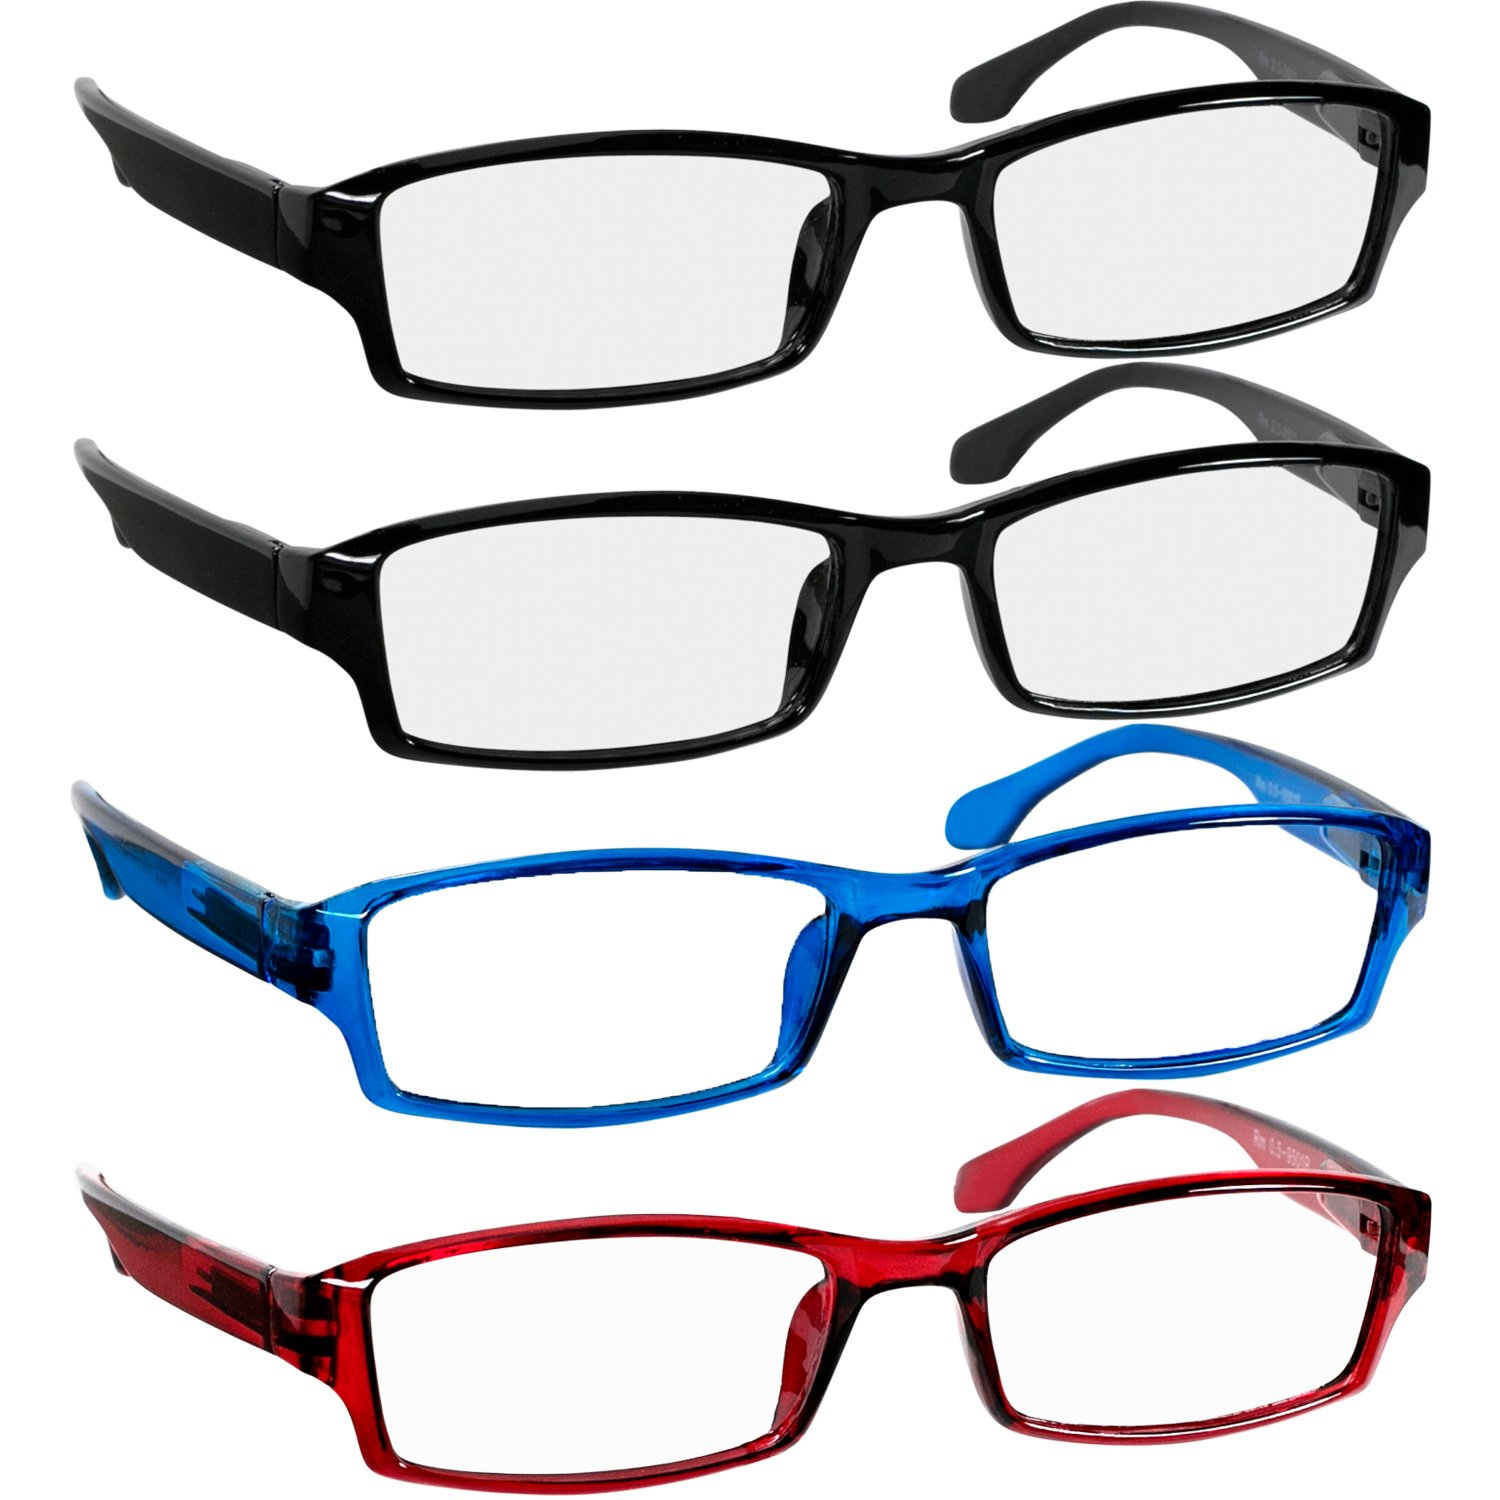 bd417f144950 Amazon.com  Reading Glasses 2.5 2 Black Red Blue Fashion Readers for Men    Women - Spring Arms   Dura-Tight Screws Have a Stylish Look and Crystal  Clear ...